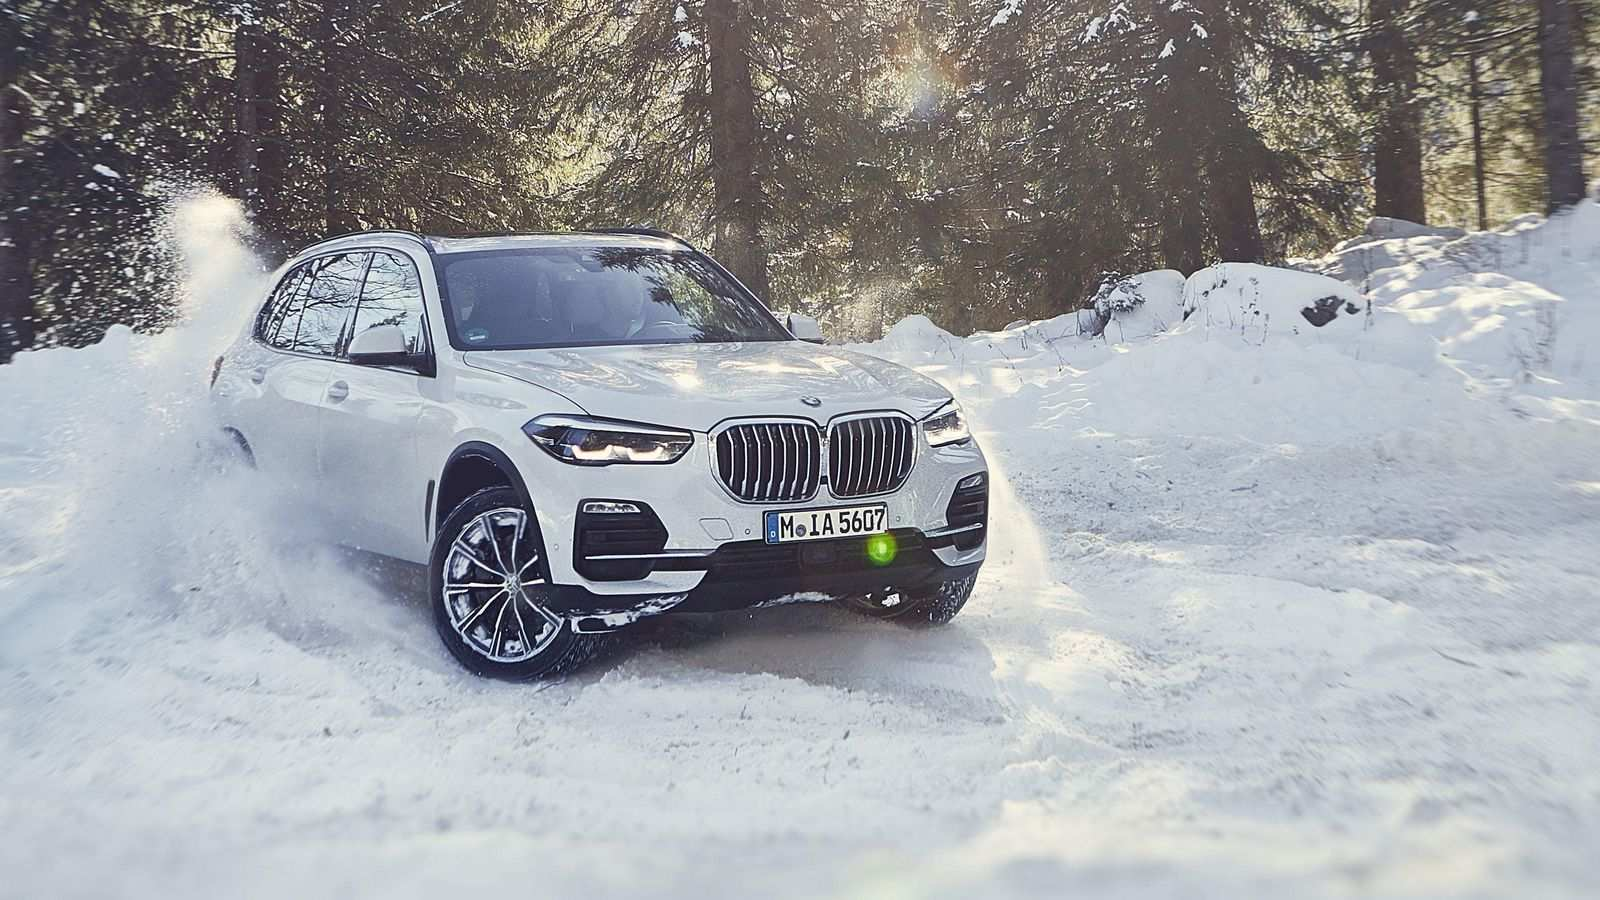 77 The Best 2020 BMW X5 Photos